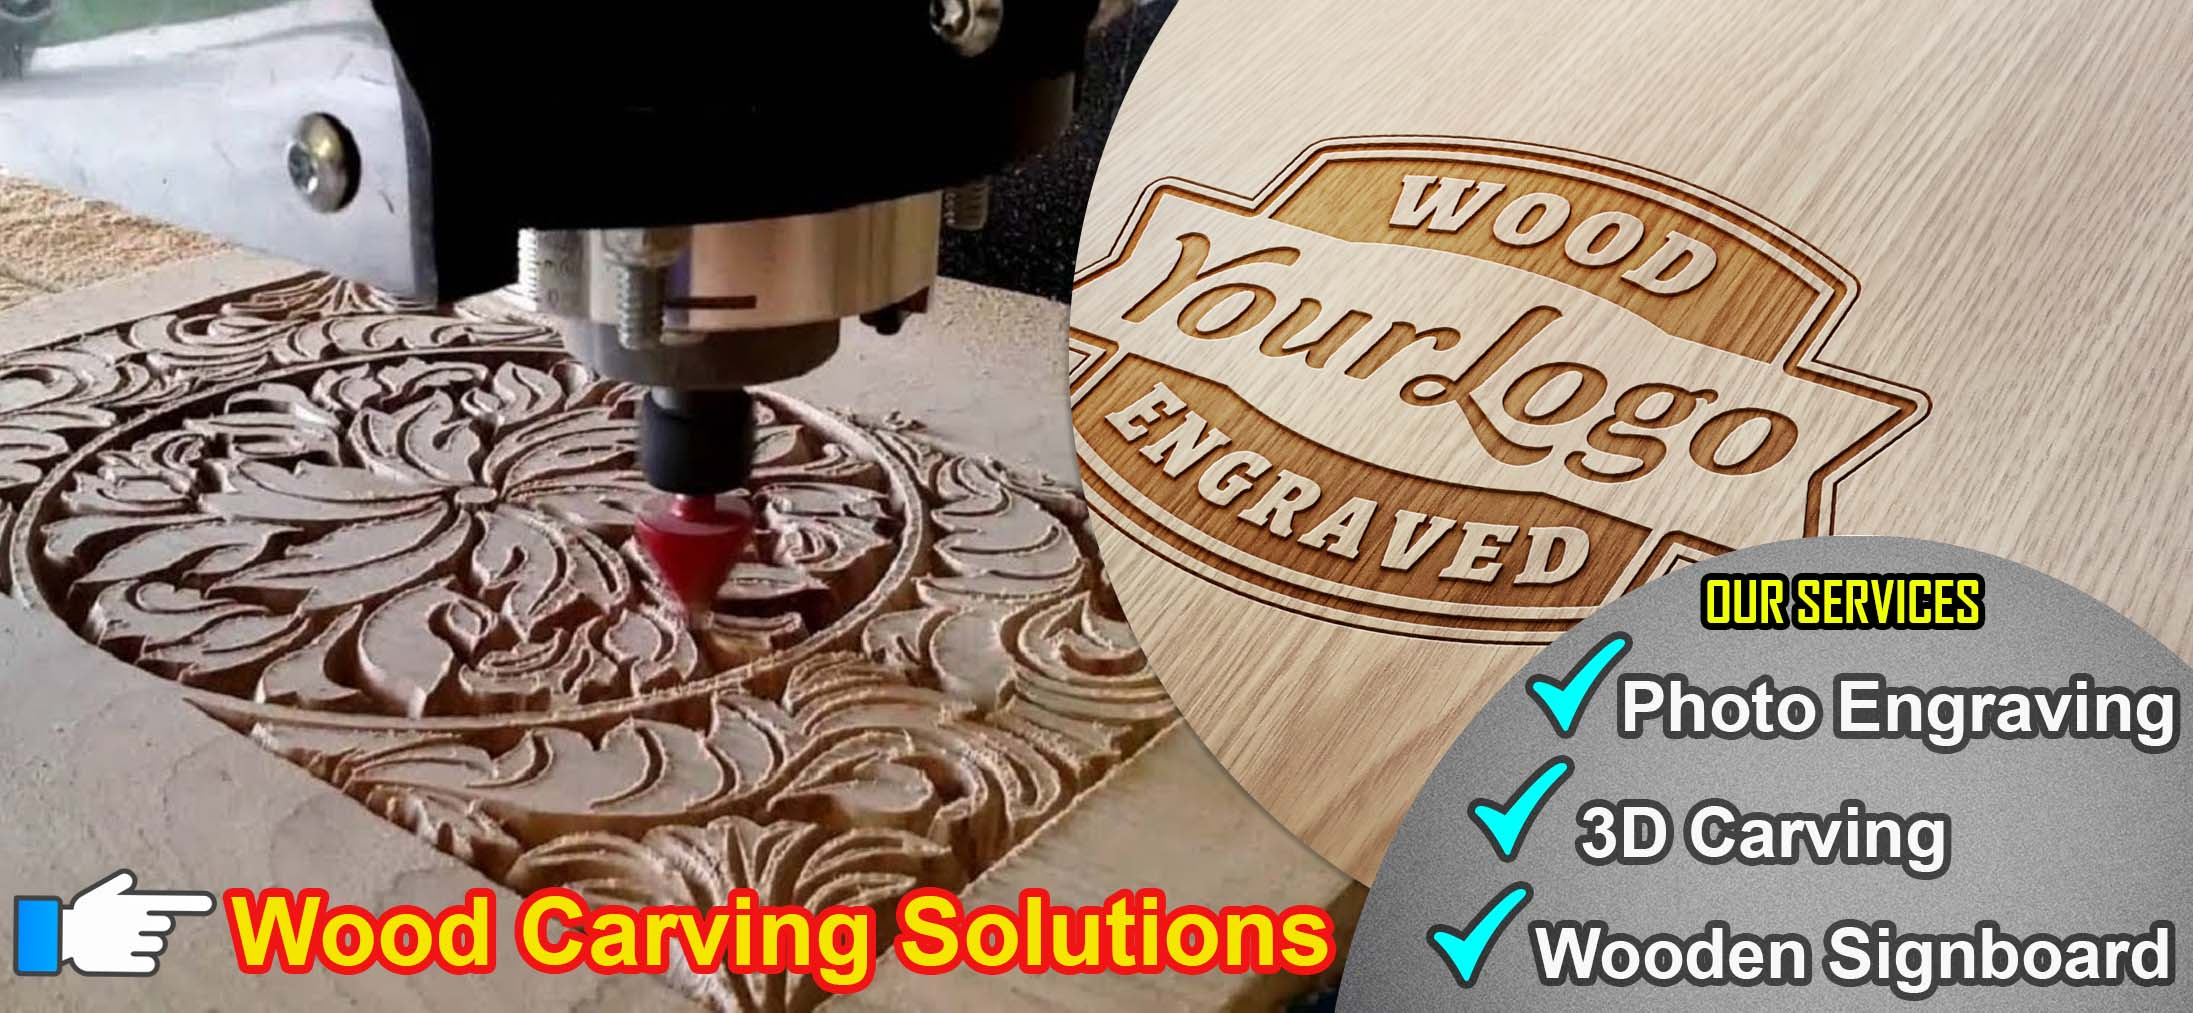 Wood Carving Work